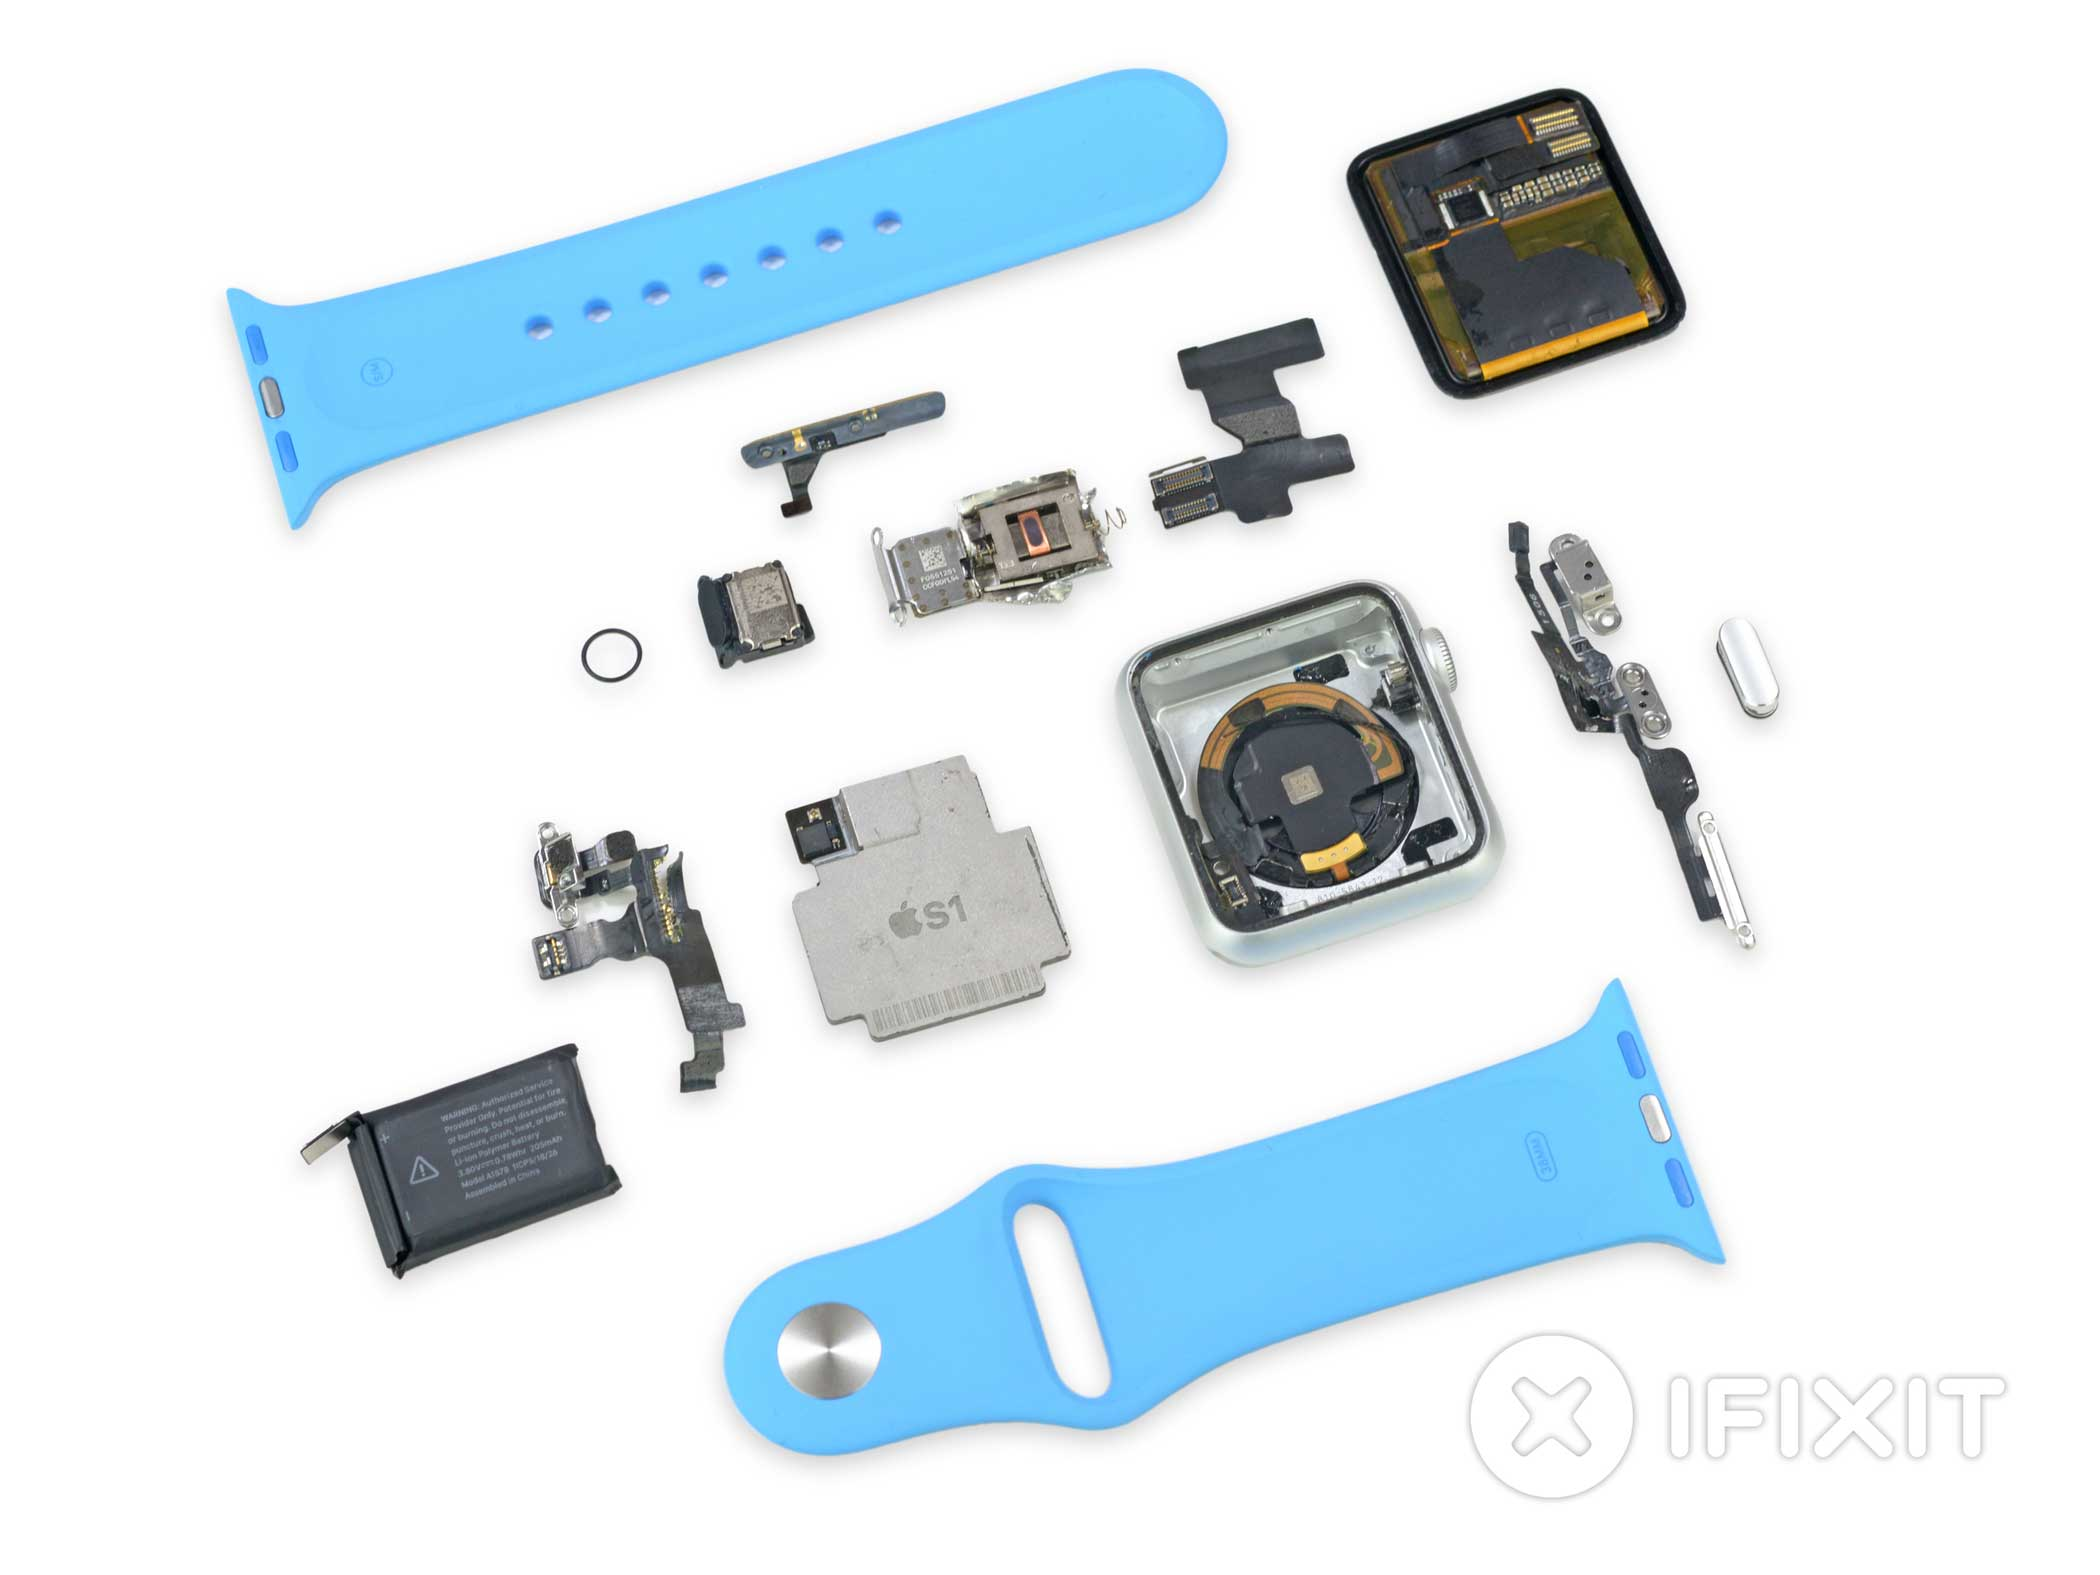 The separate components of the Apple Watch